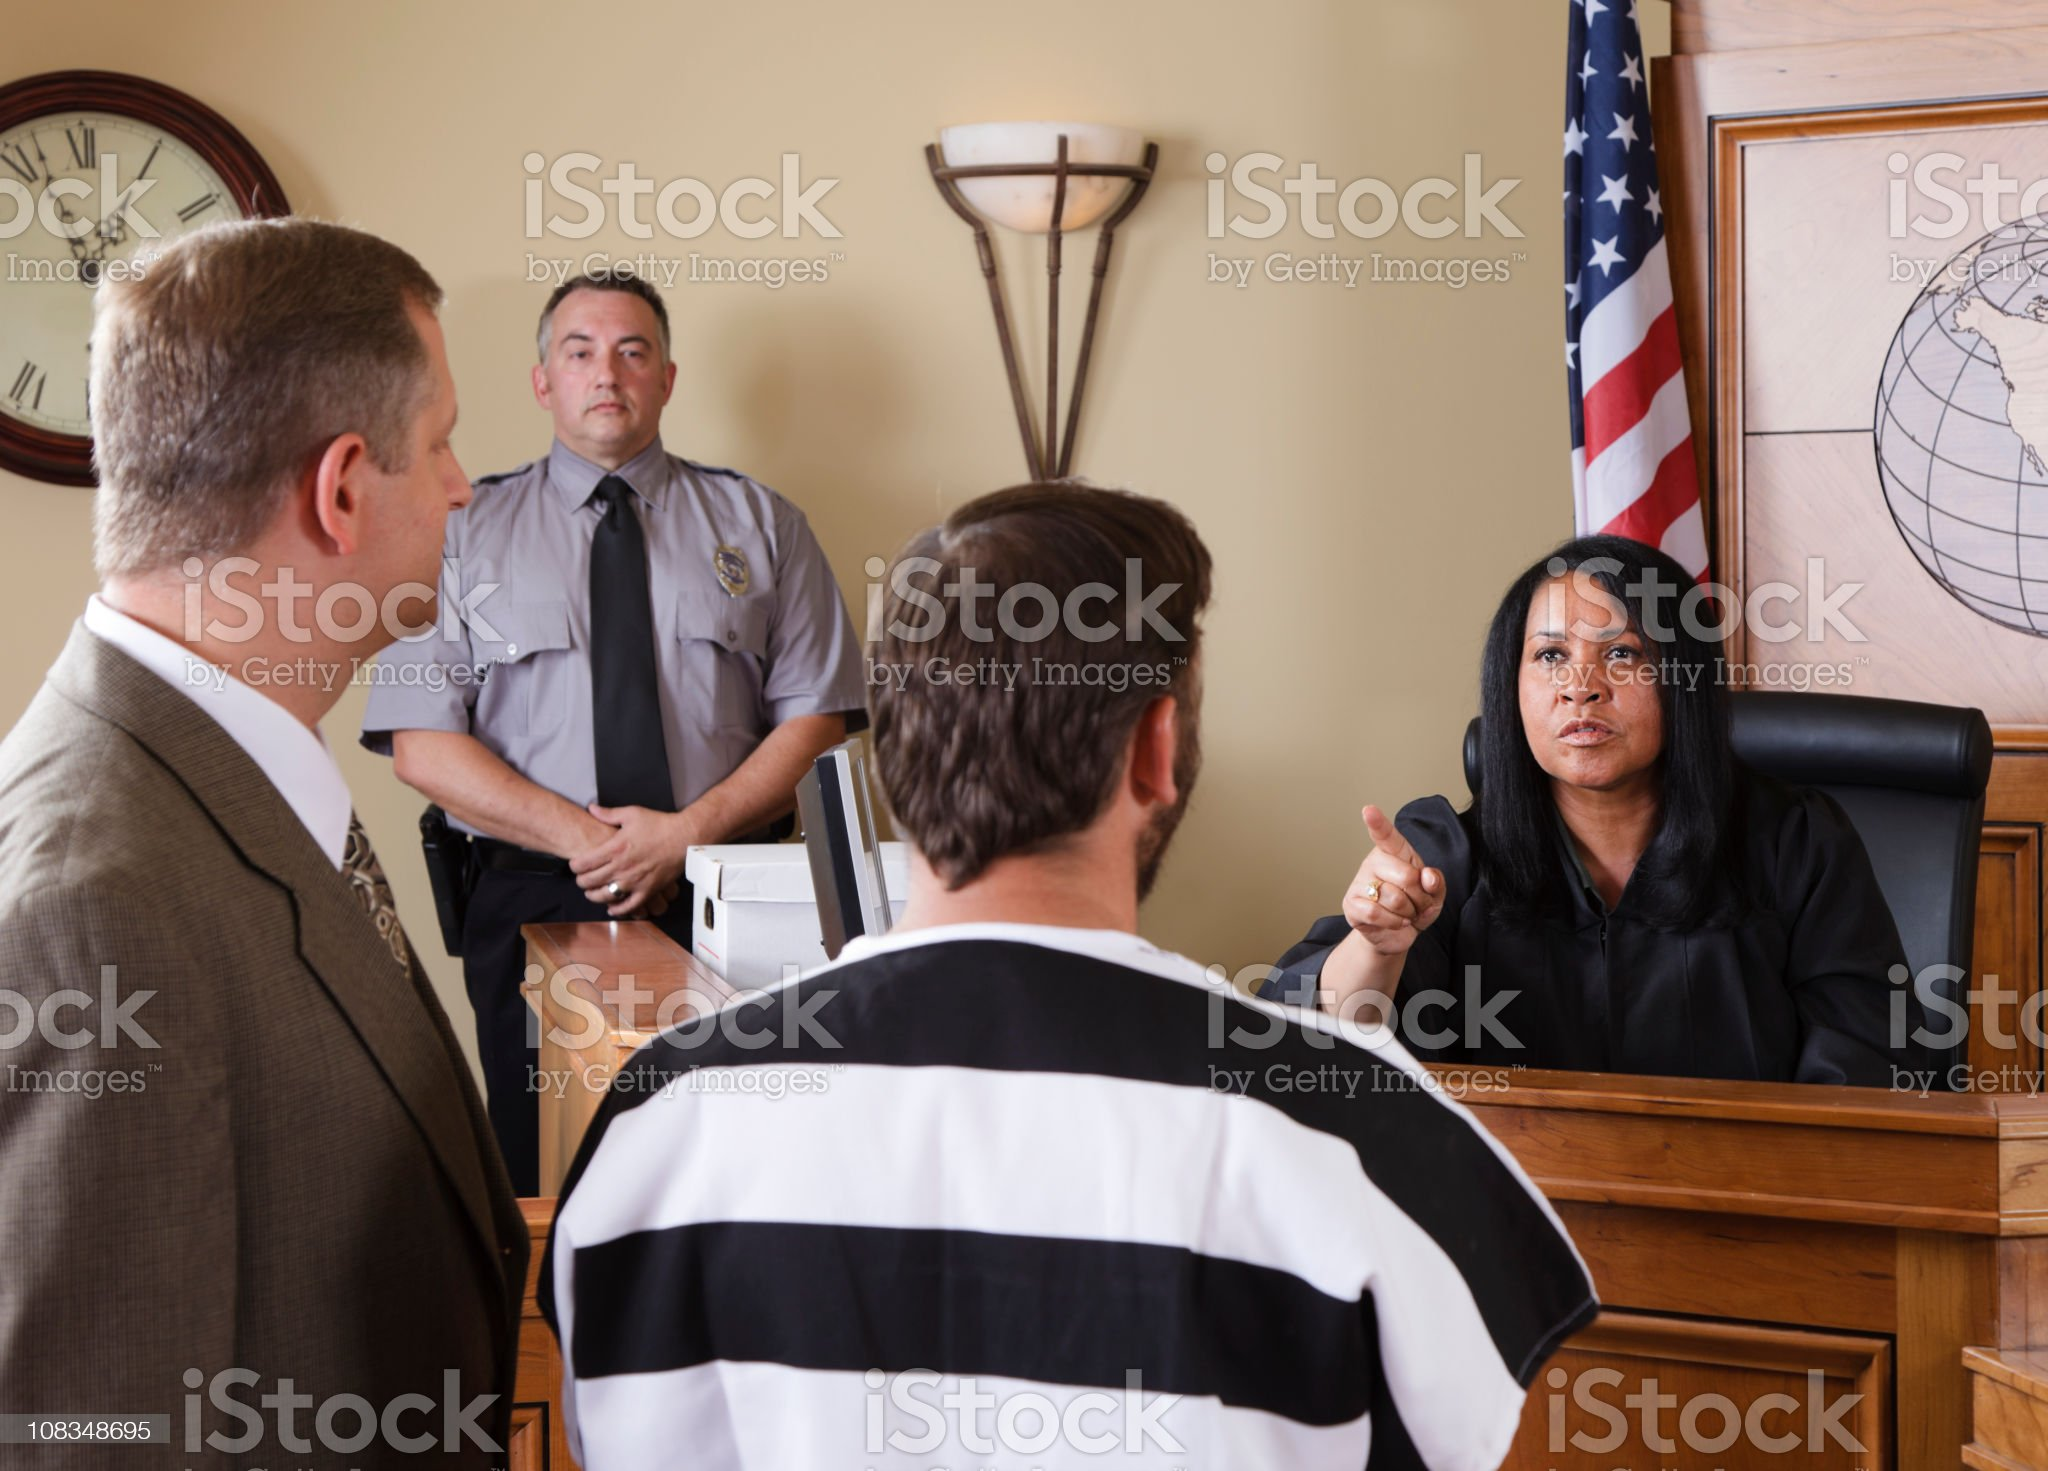 Accused Criminal and Lawyer in a Courtroom royalty-free stock photo